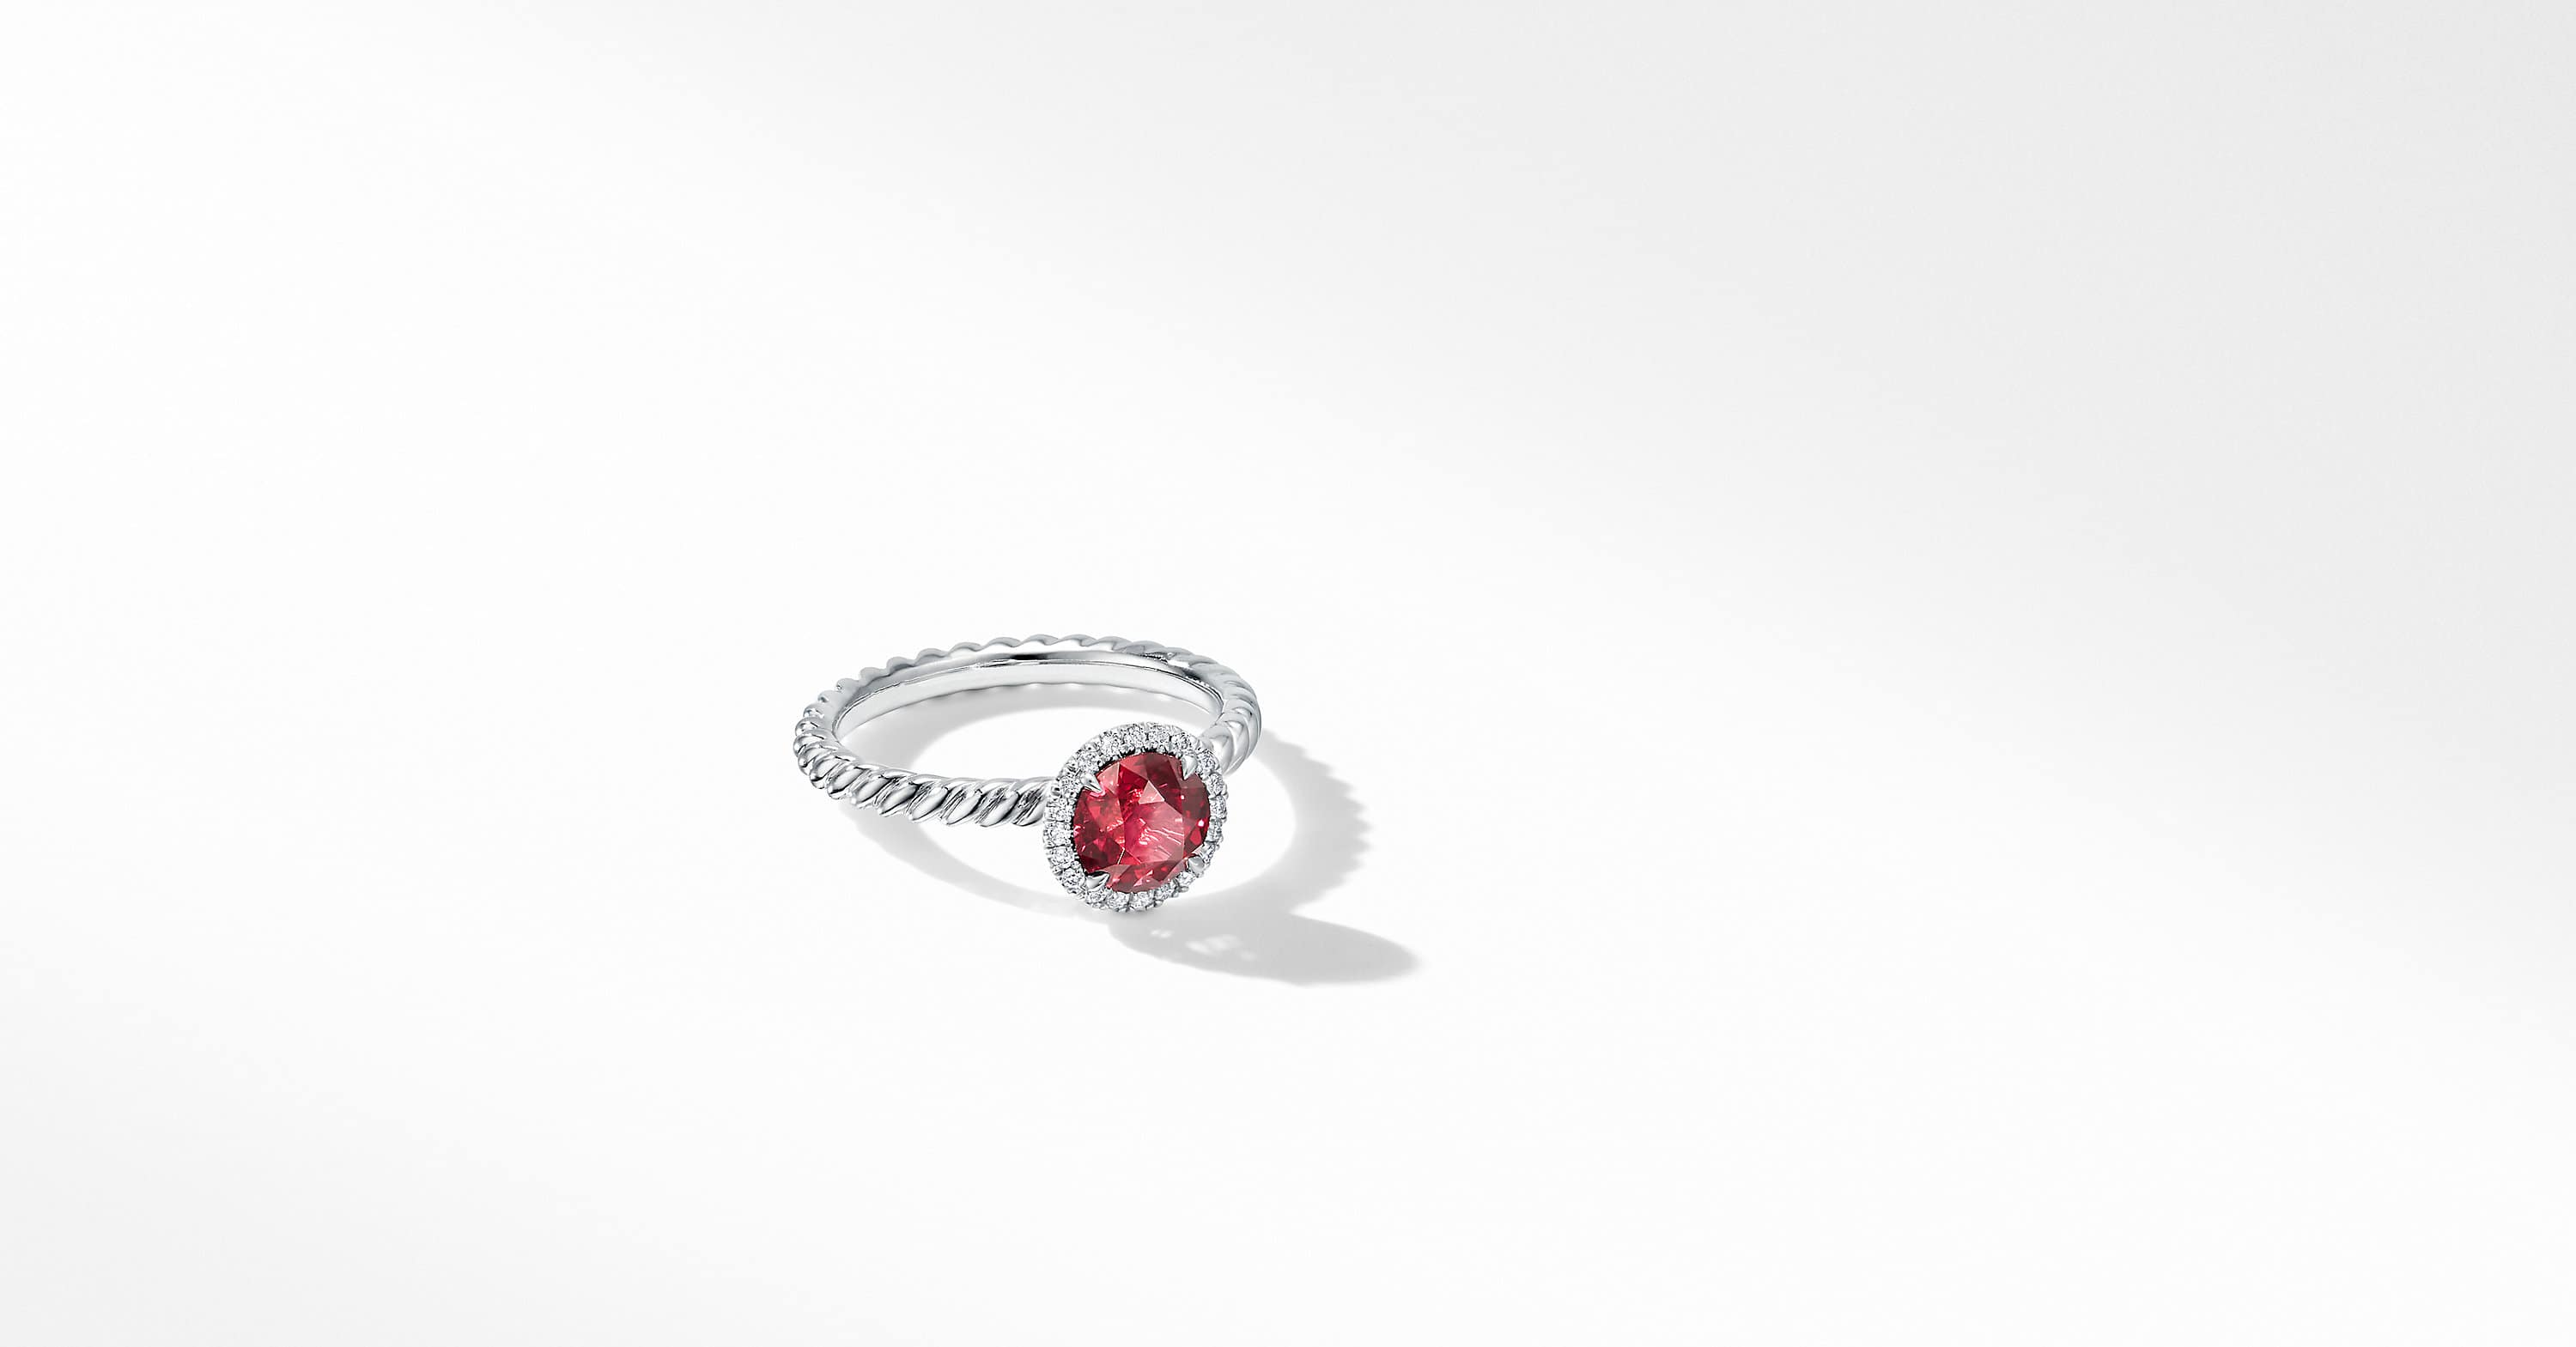 DY Capri Engagement Ring in Platinum with Ruby, Round